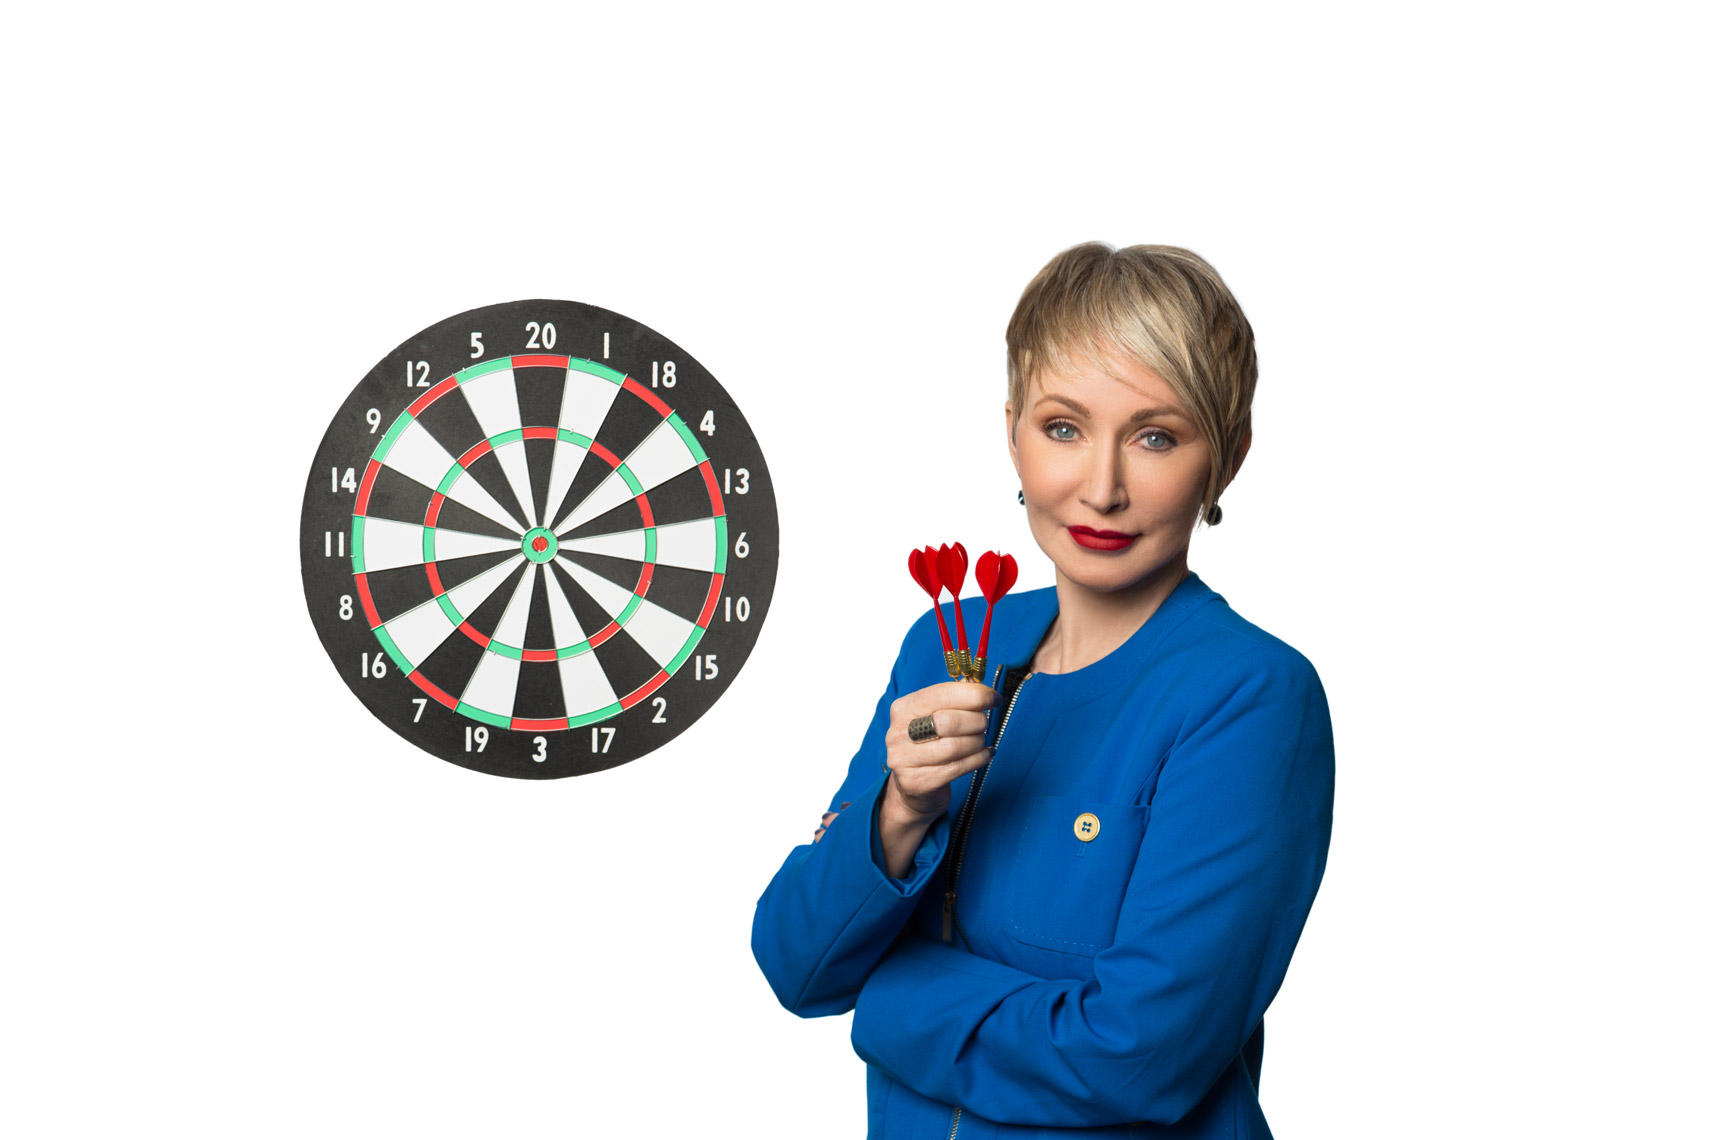 Personal Branding Photography of Woman with Dart Board and Darts